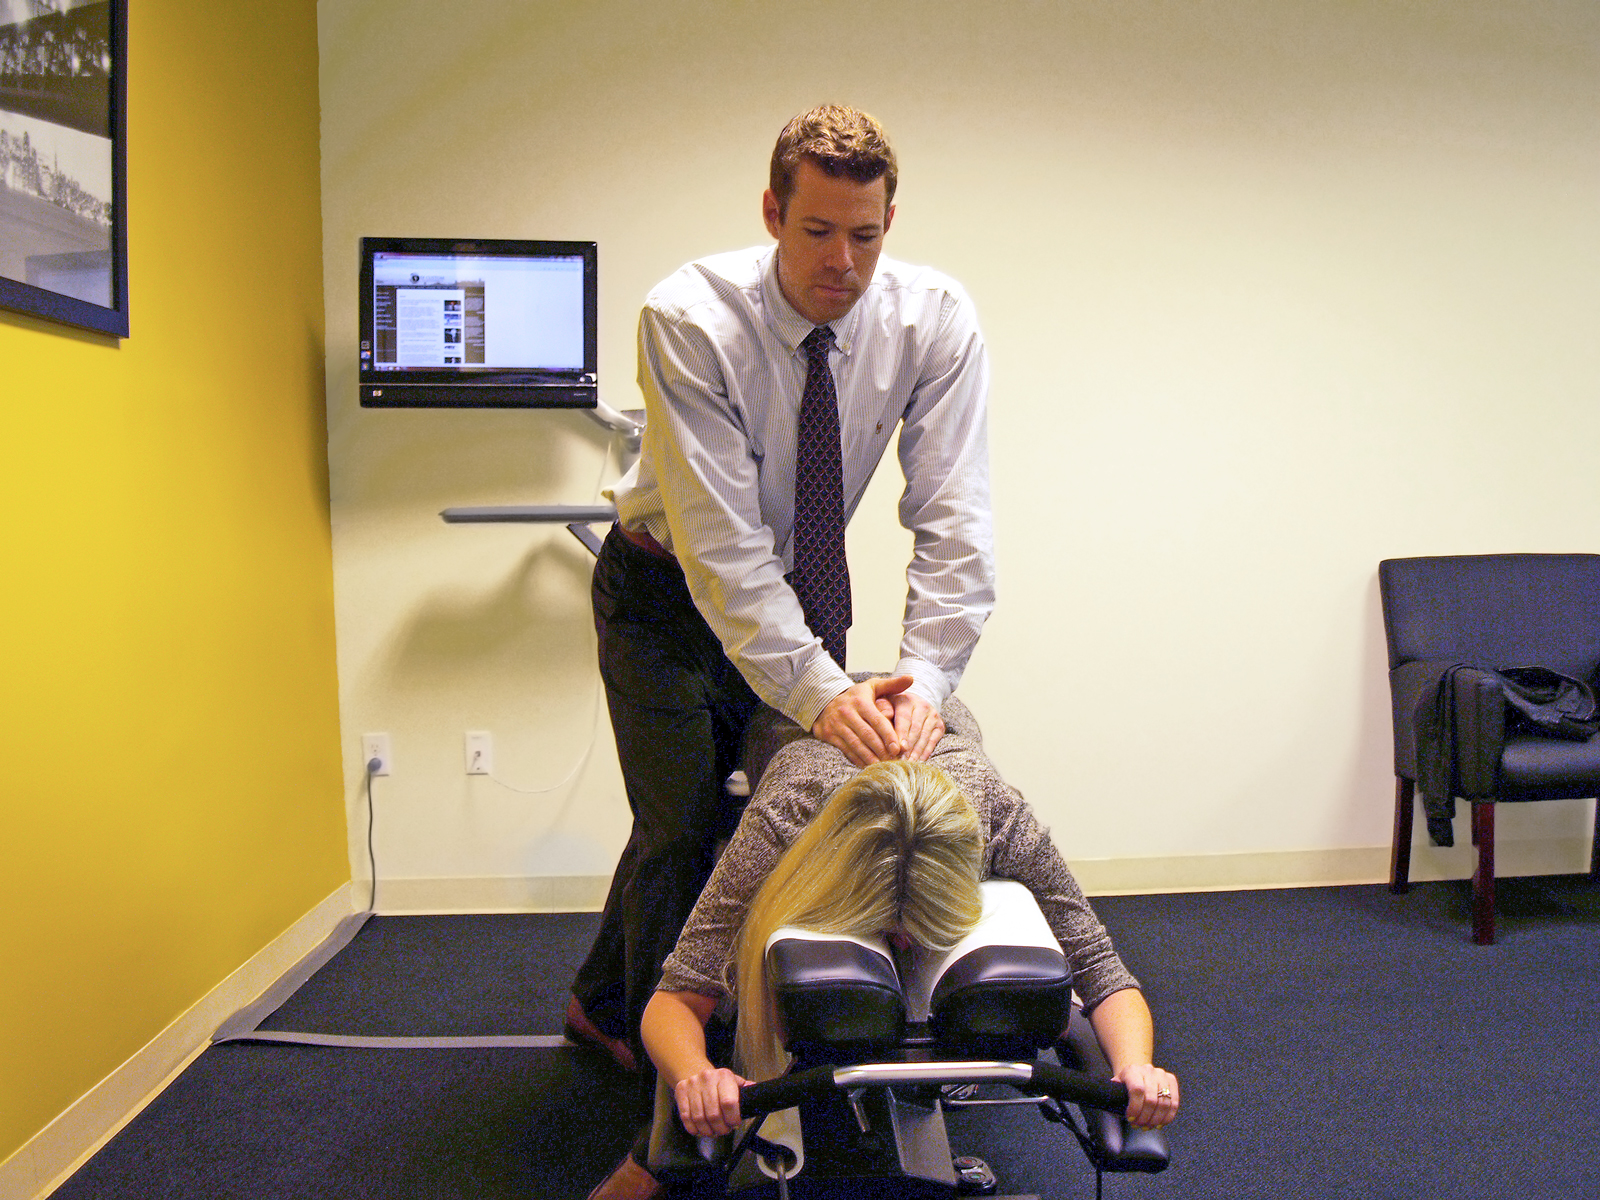 Chiropractic best undergraduate degrees